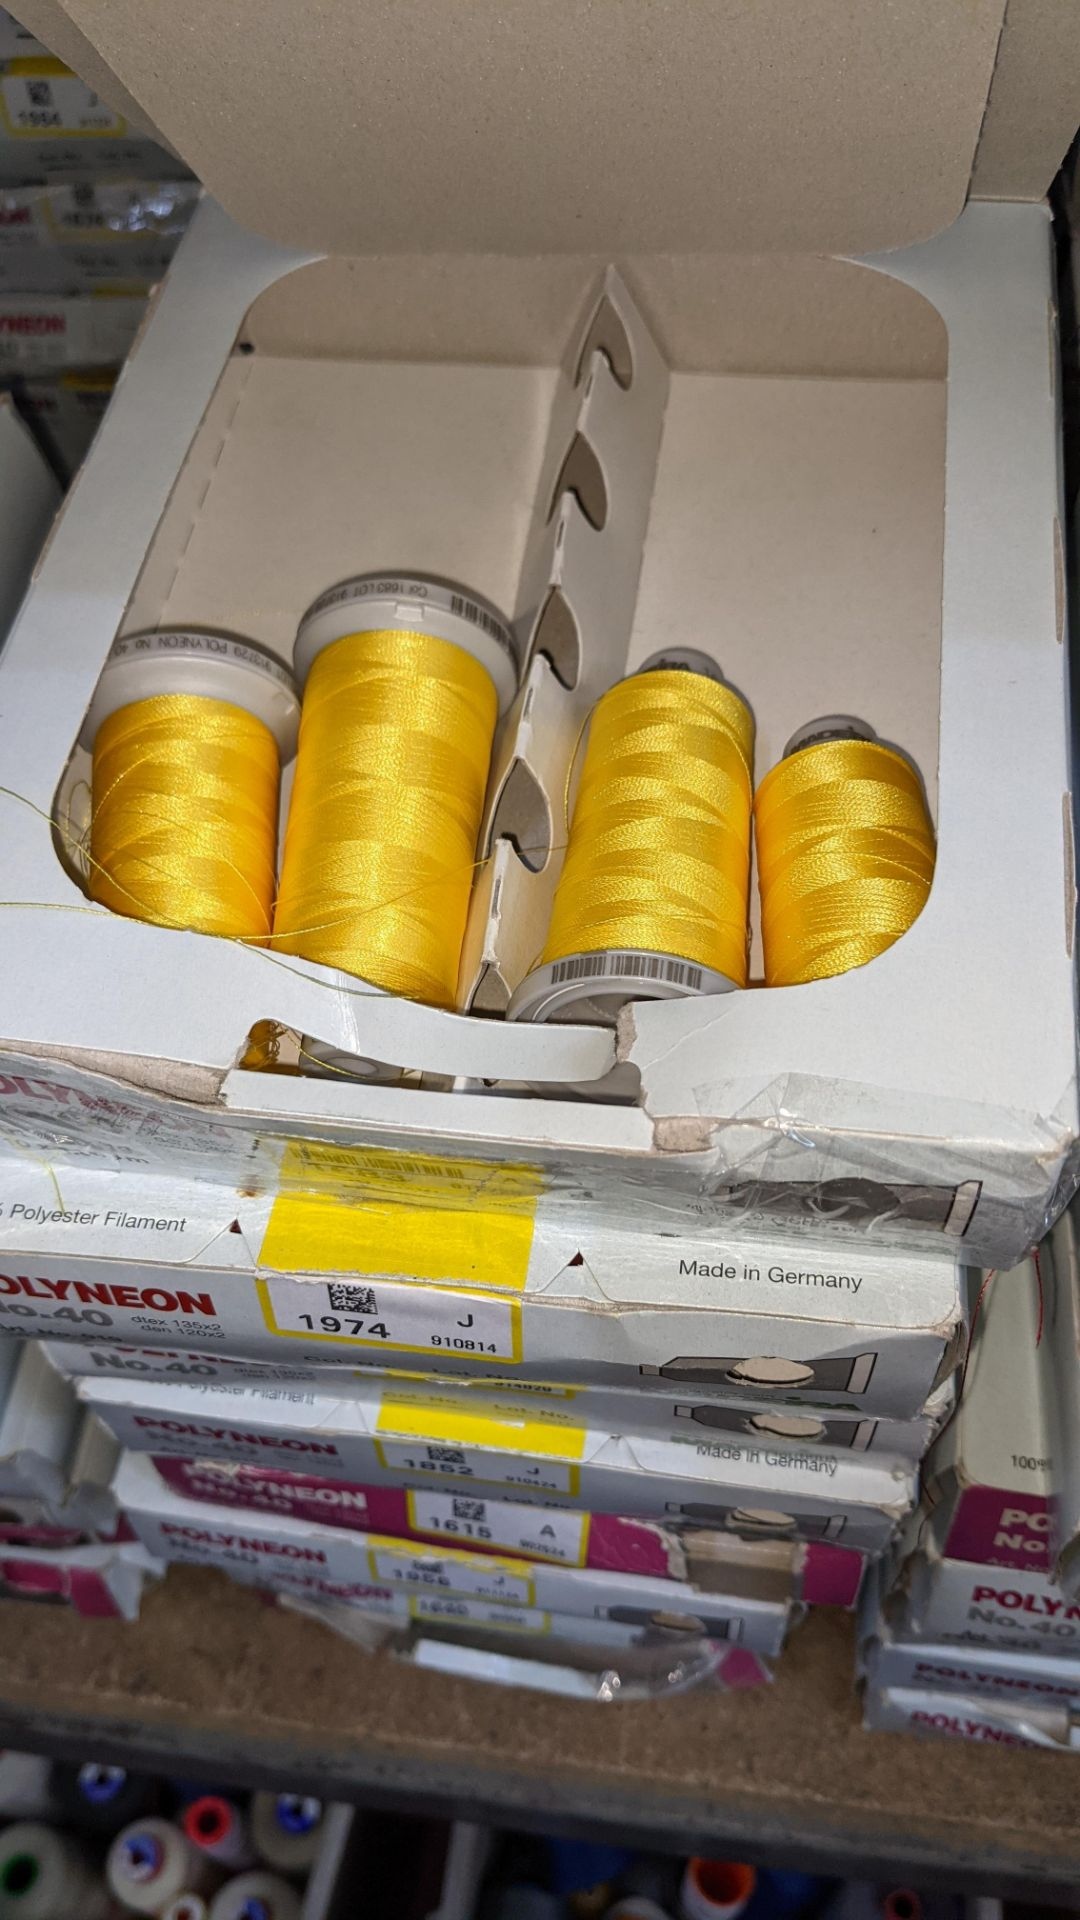 18 boxes of Madeira No. 40 Polyneon embroidery thread - Image 5 of 6